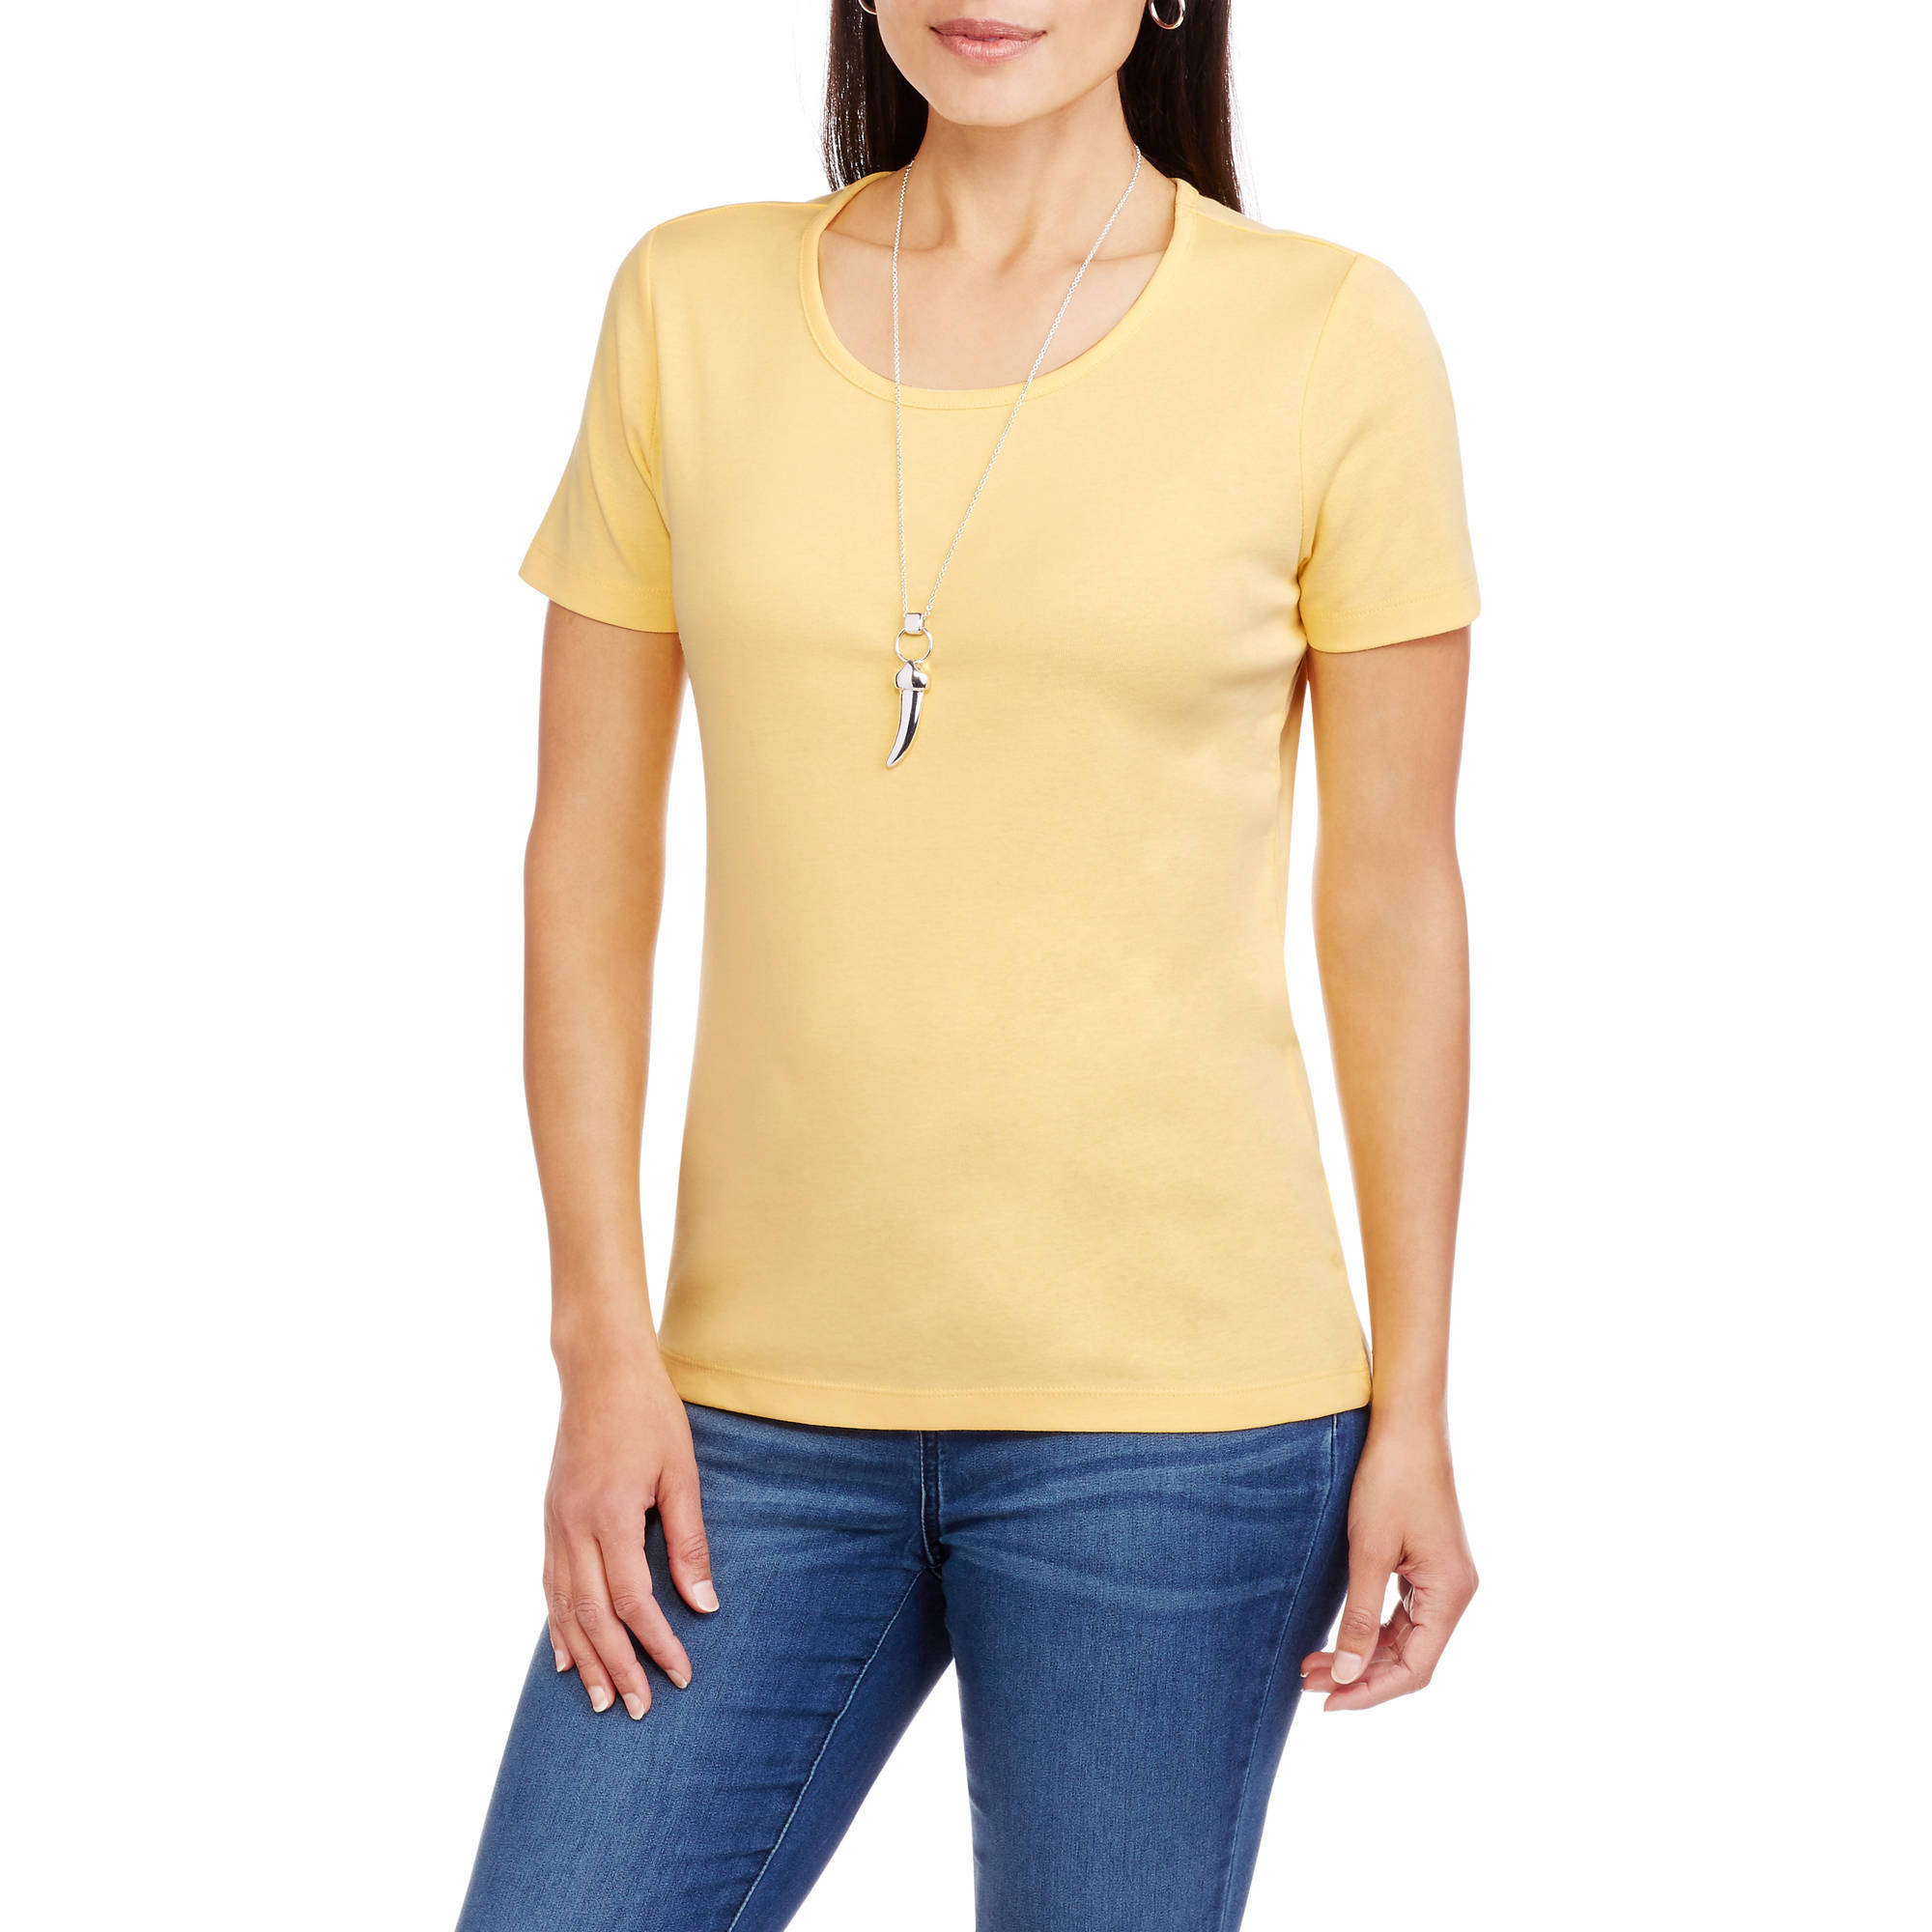 Yellow Women's Tops & T-Shirts - Walmart.com